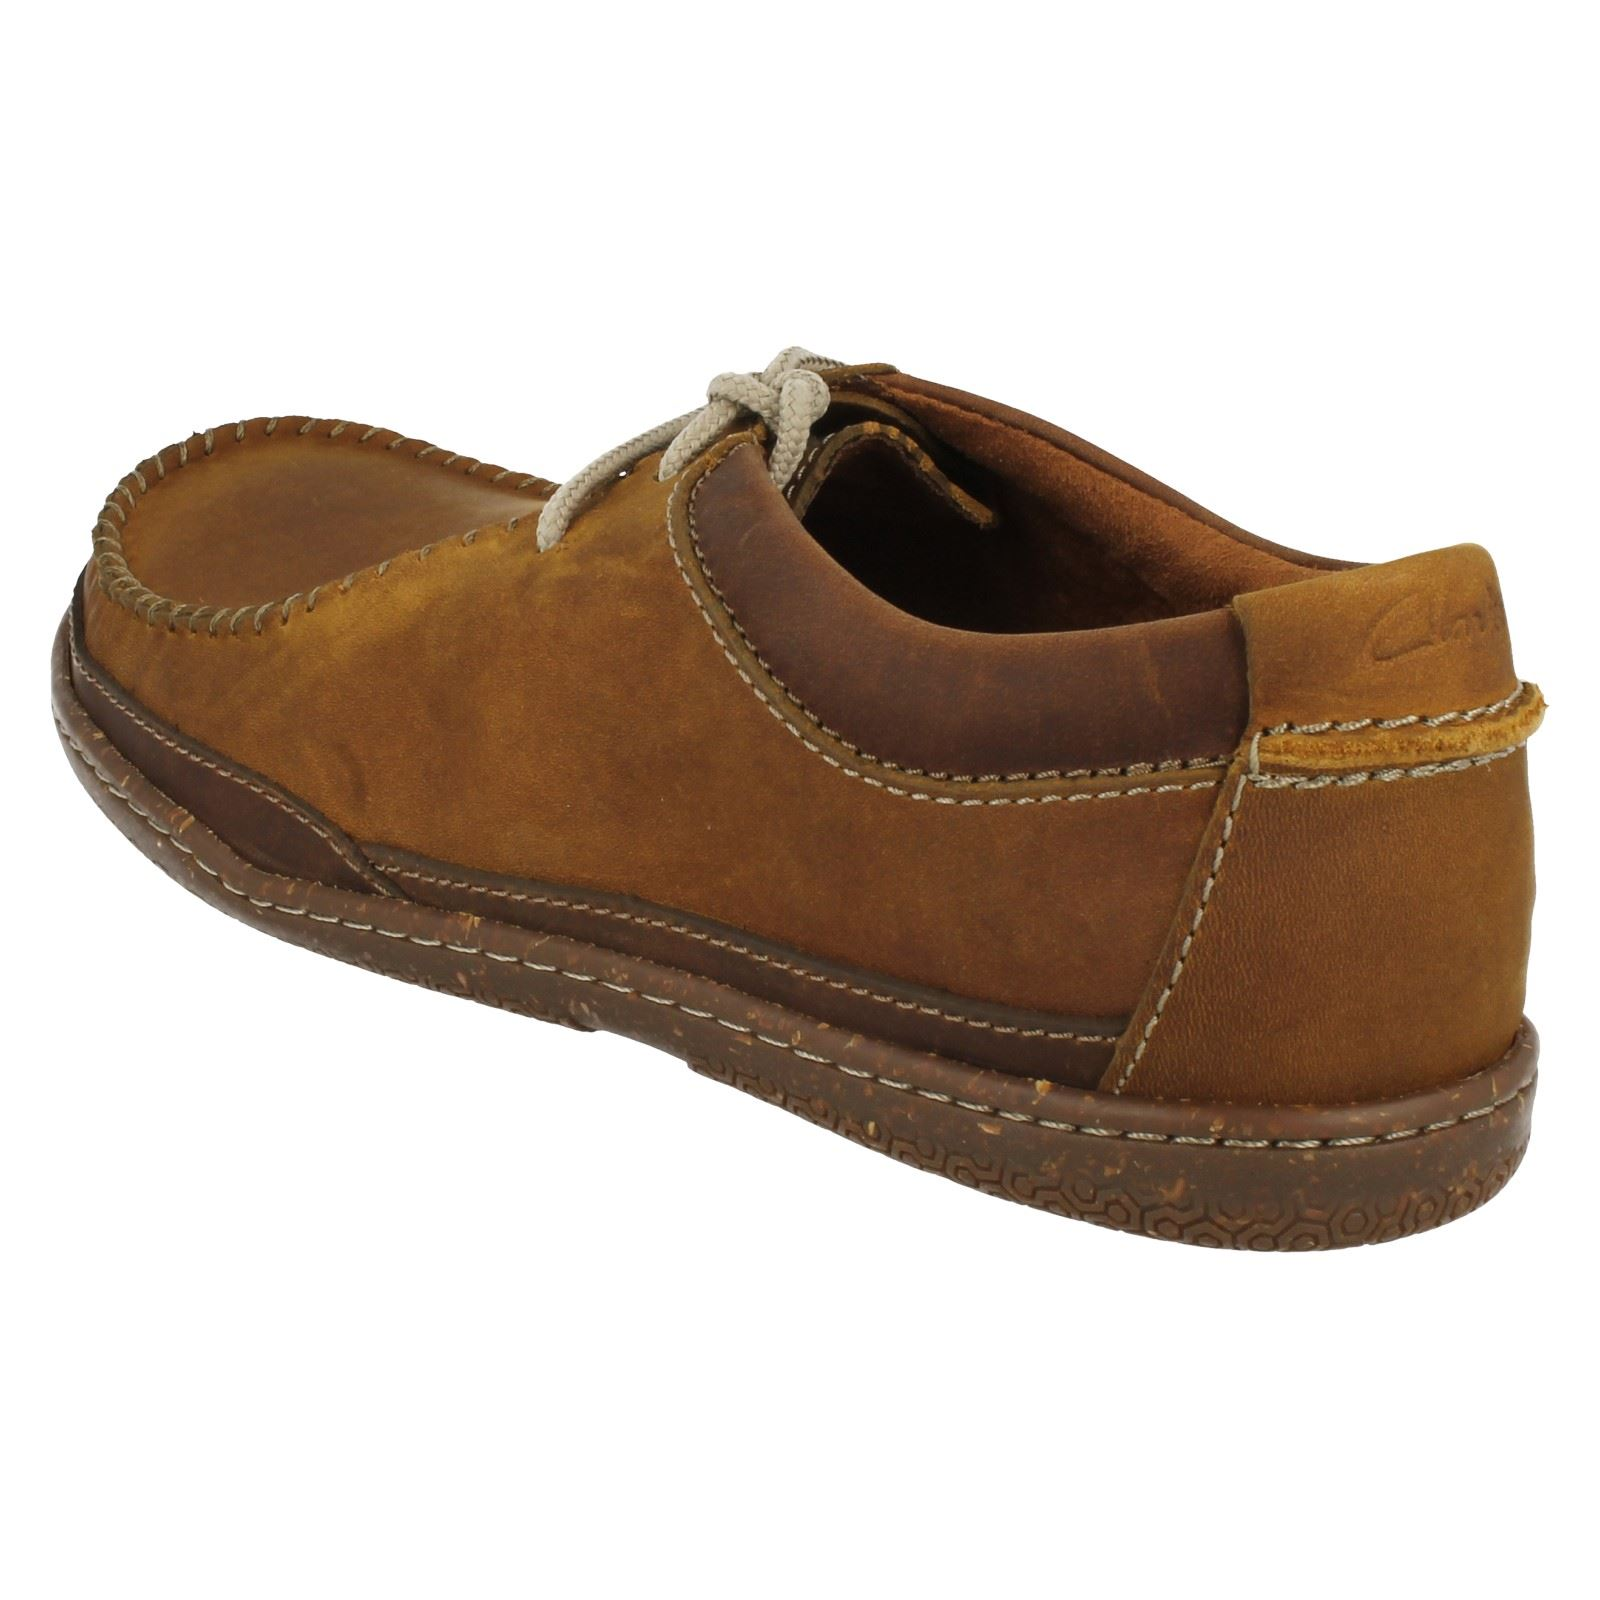 Scarpe casual da uomo  Scarpe Casual da Uomo Clarks trapell Pace